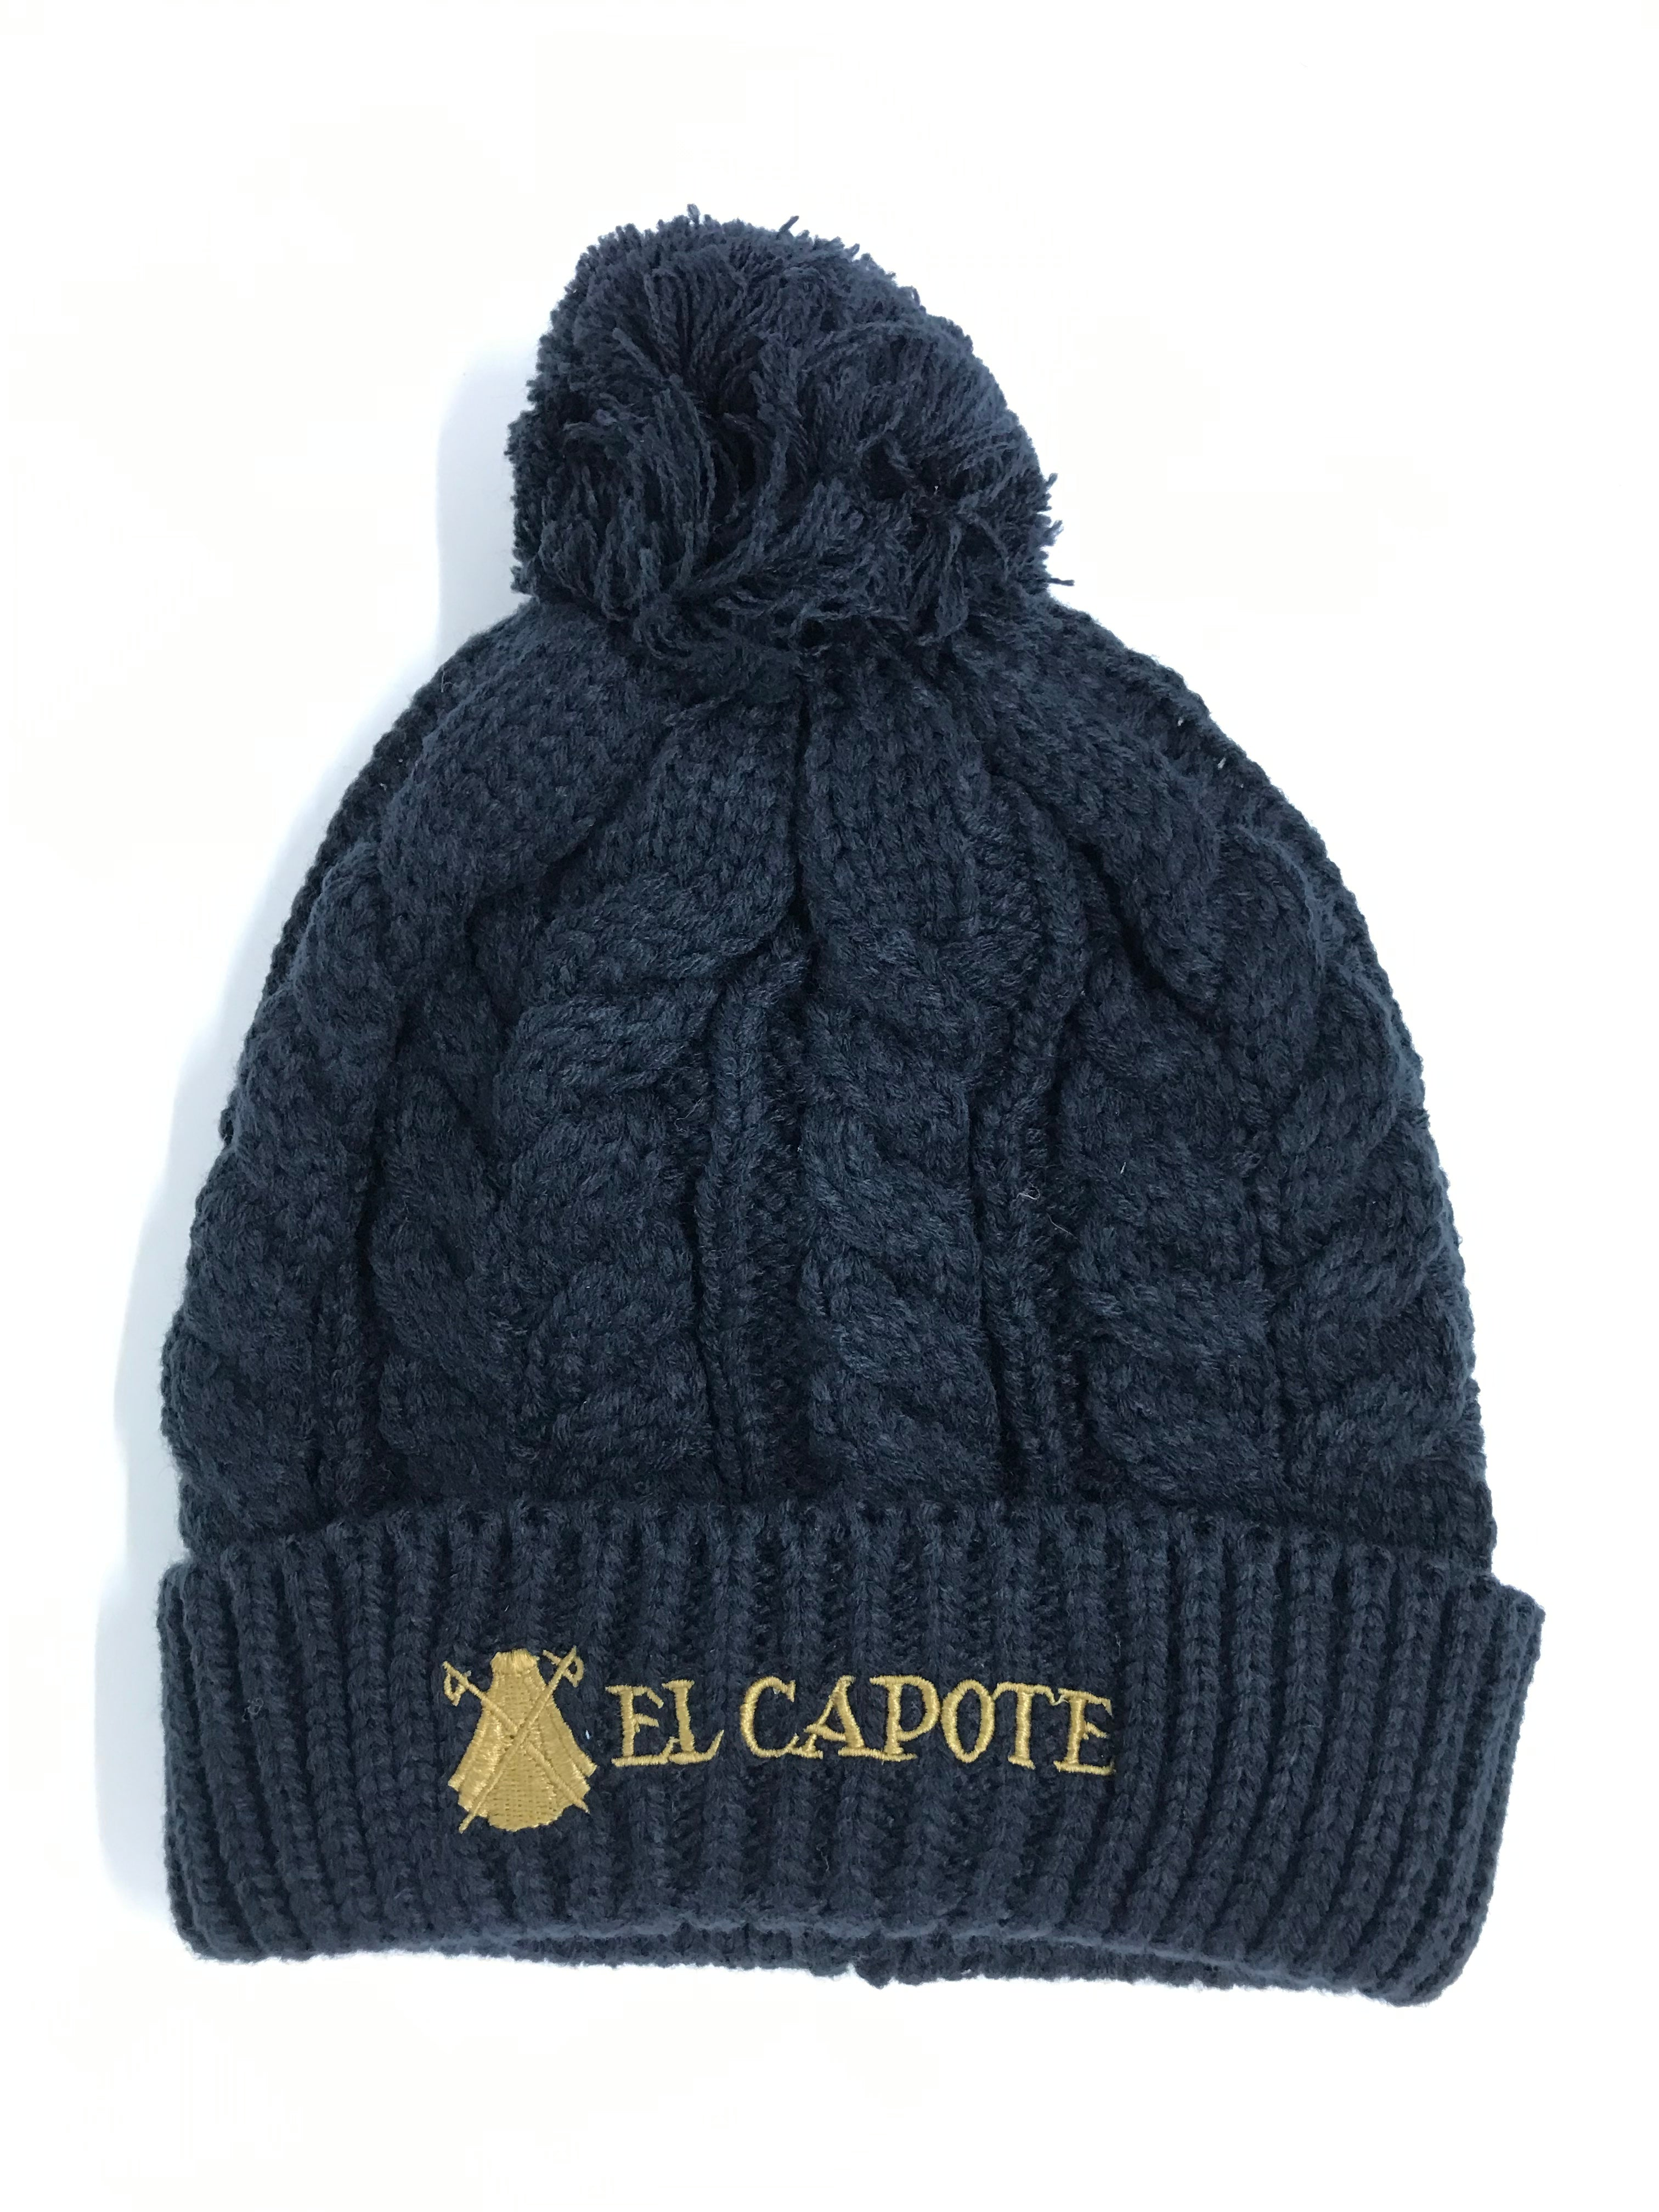 NAVY BLUE WOOL CAP